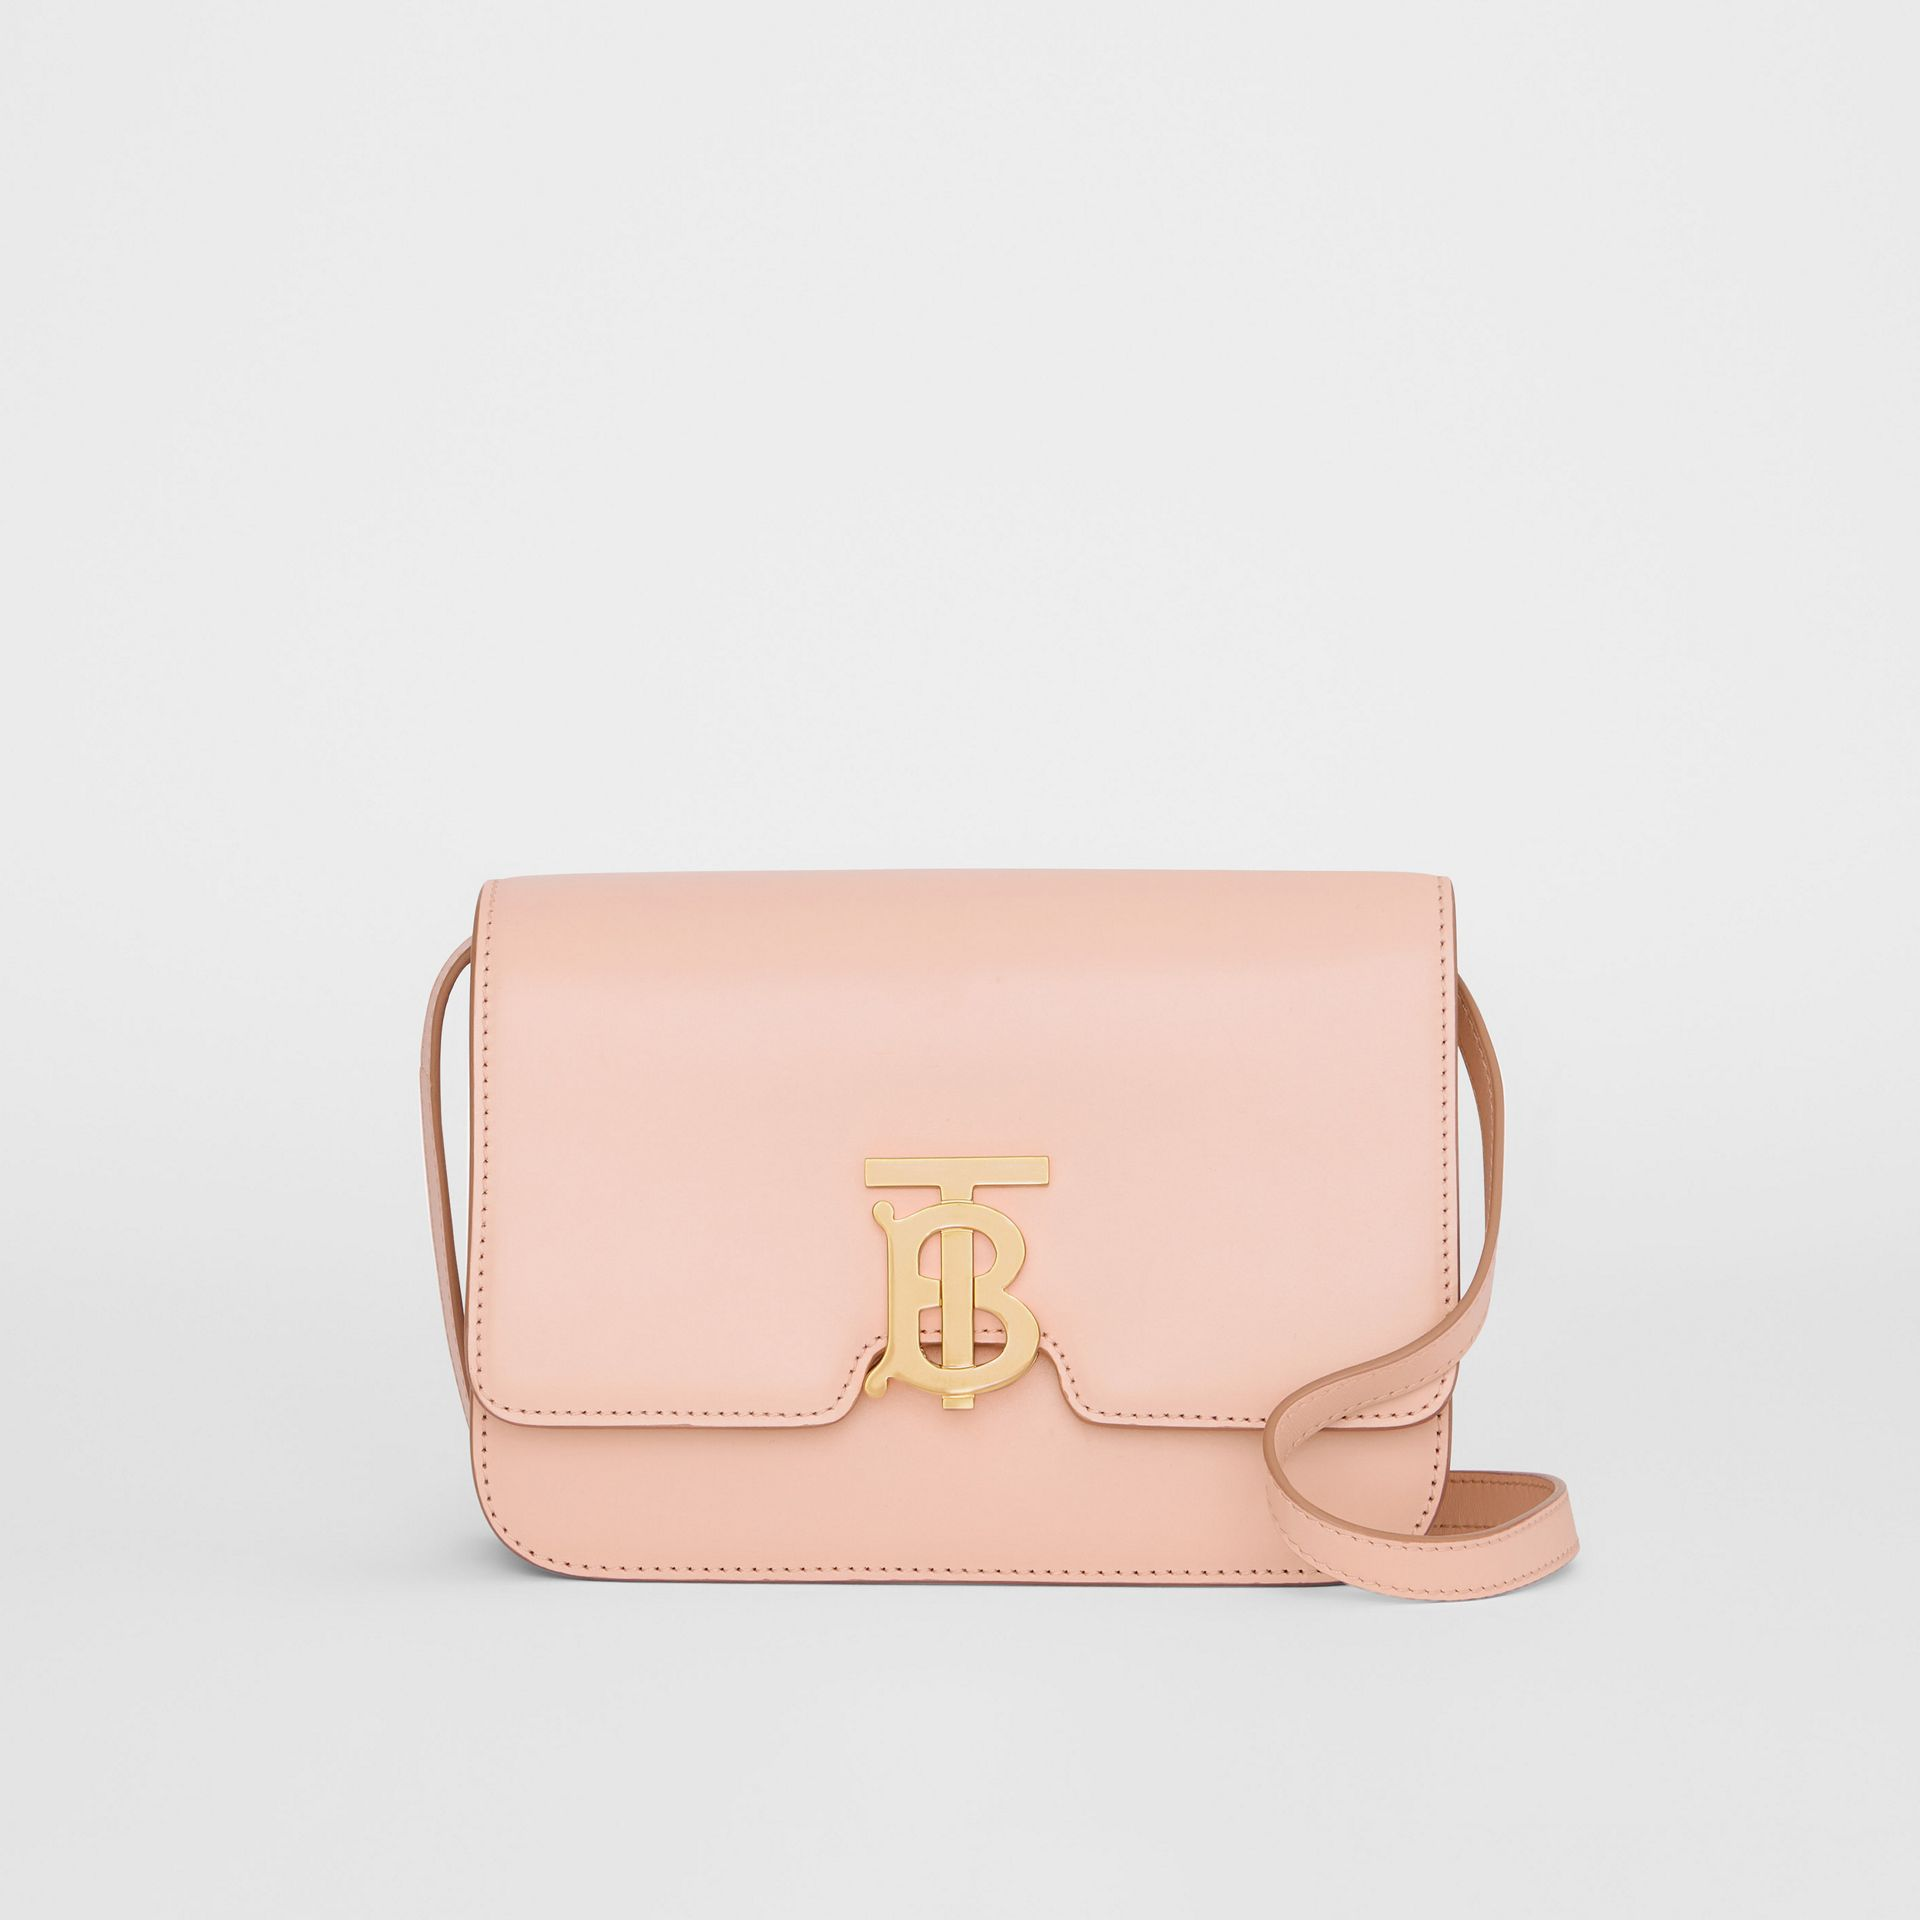 Small Leather TB Bag in Rose Beige - Women | Burberry Canada - gallery image 0